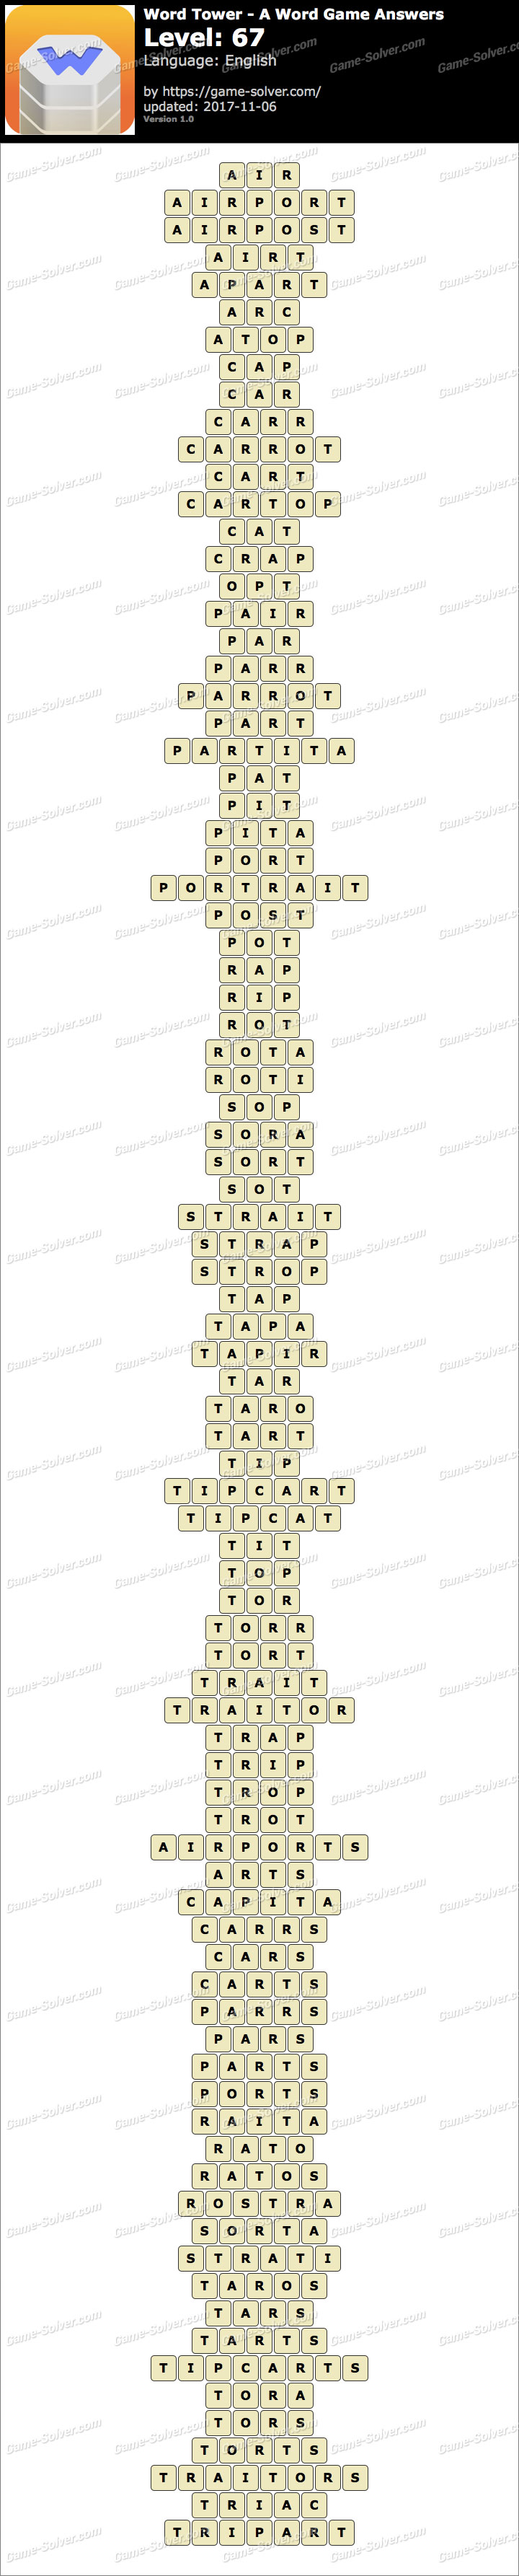 Word Tower Level 67 Answers